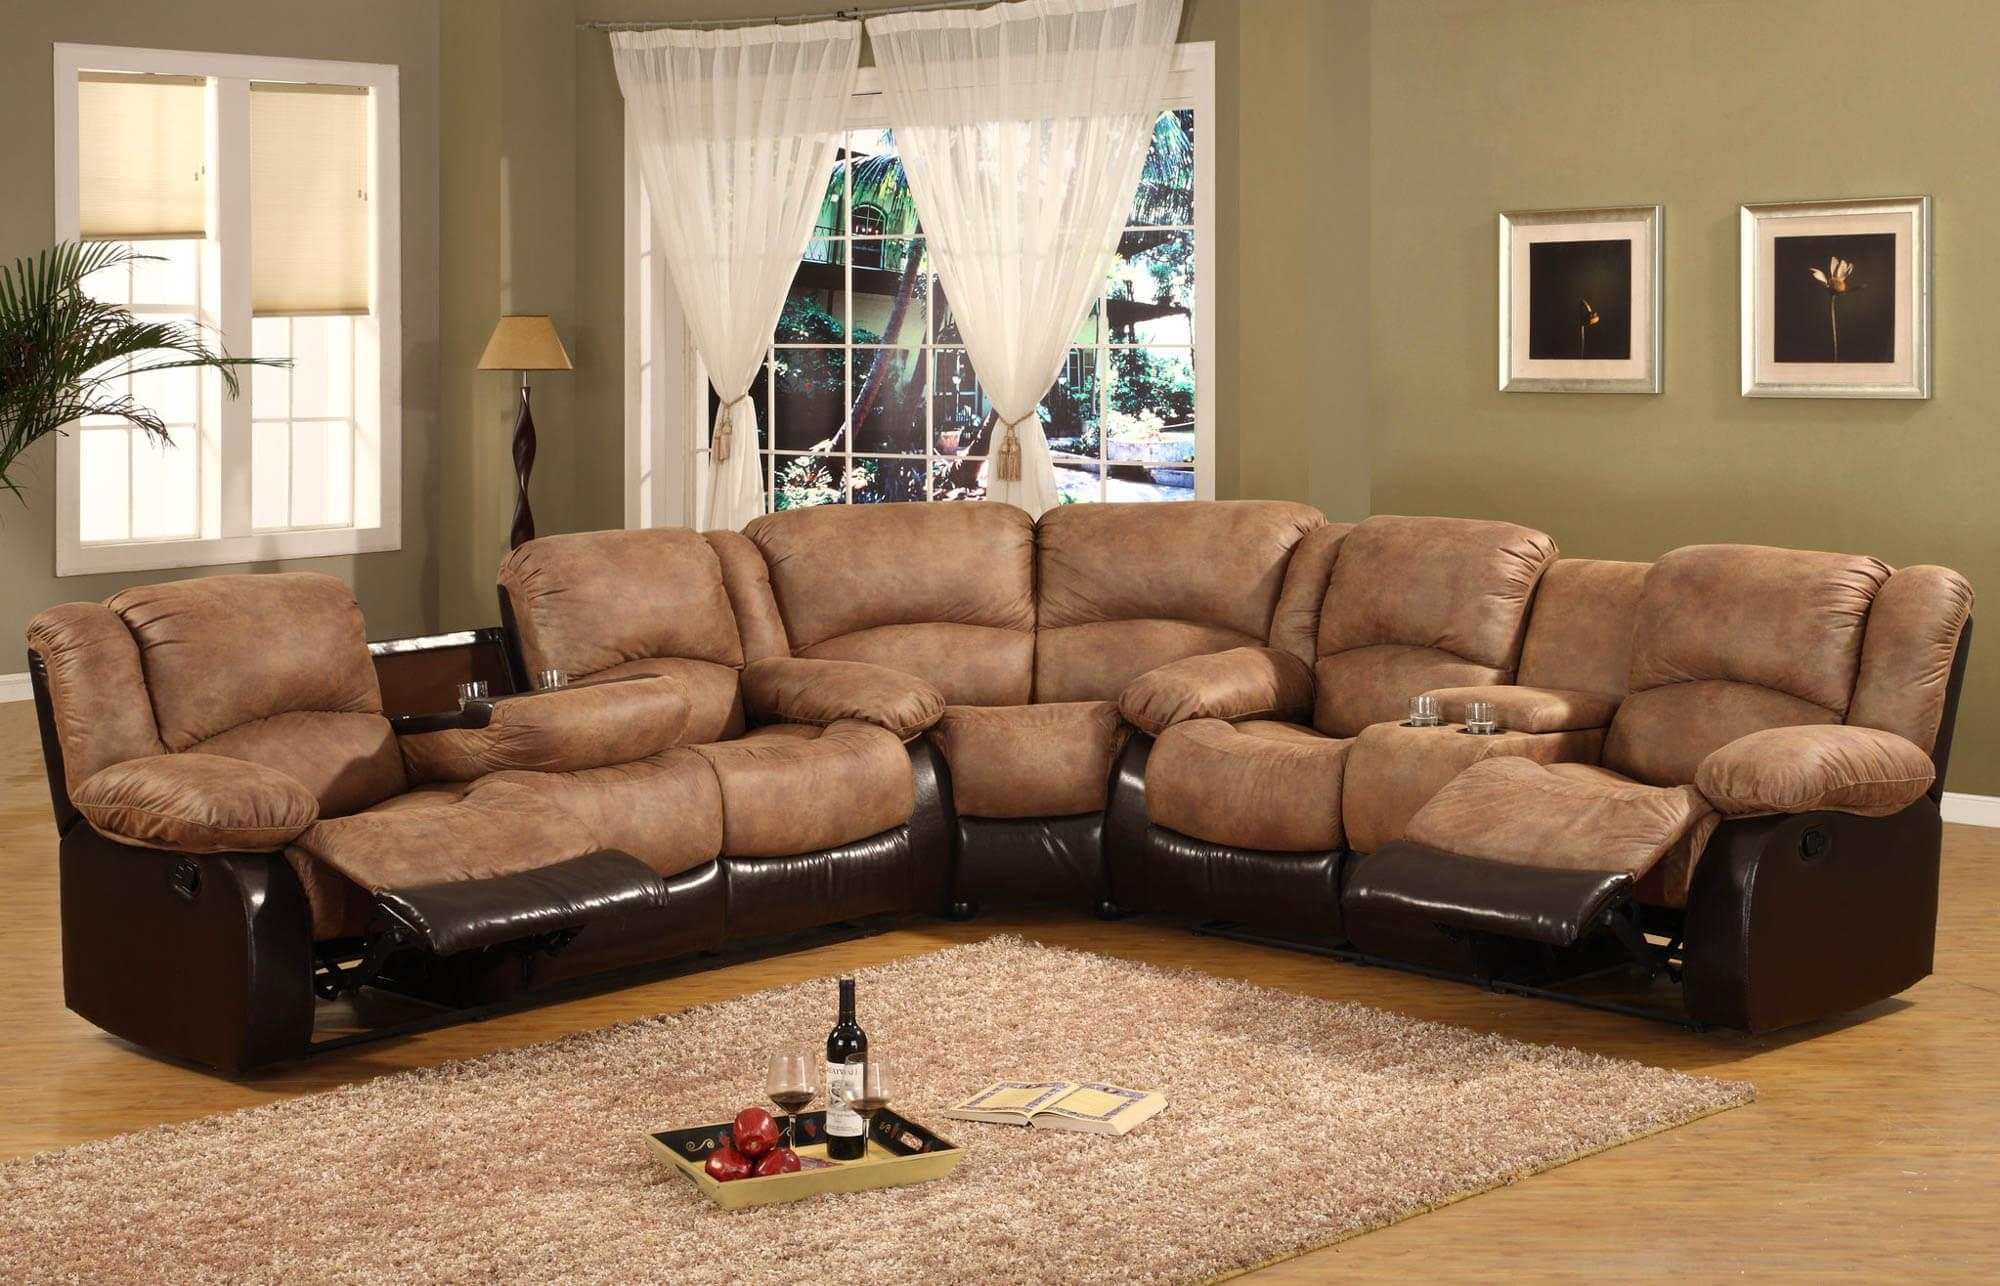 Comfortable Leather Sectional Sofas | Tehranmix Decoration Intended For Soft Sectional Sofas (View 14 of 20)